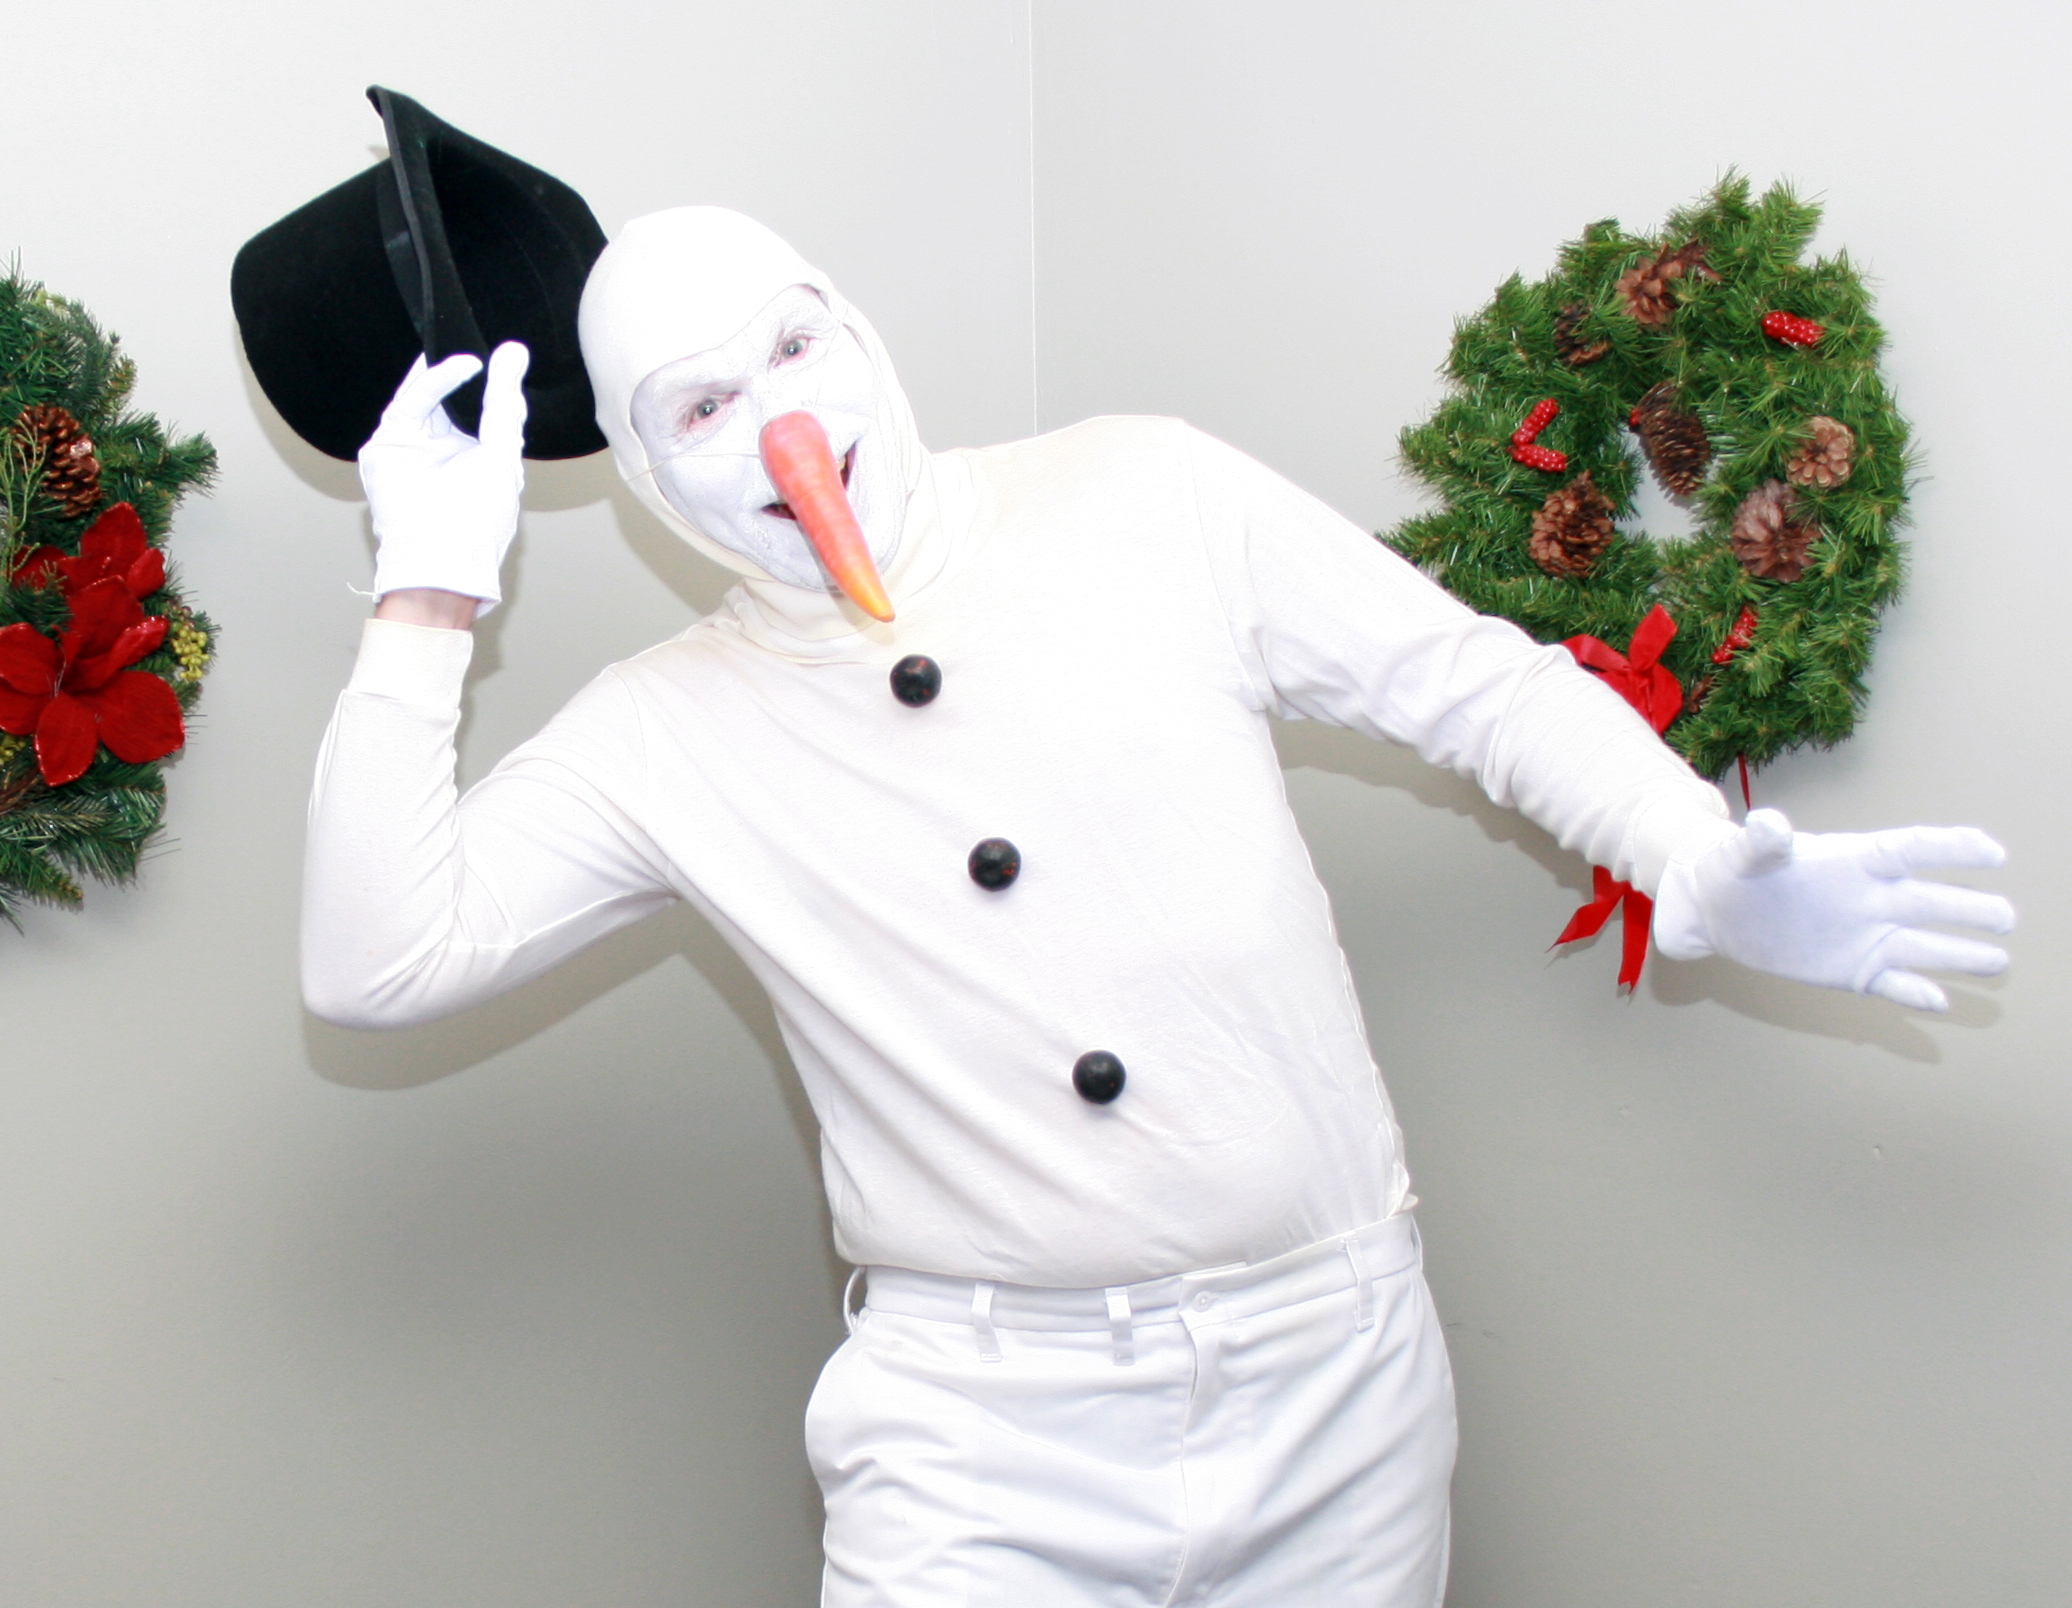 Frosty the snowman characters frosty d snowman